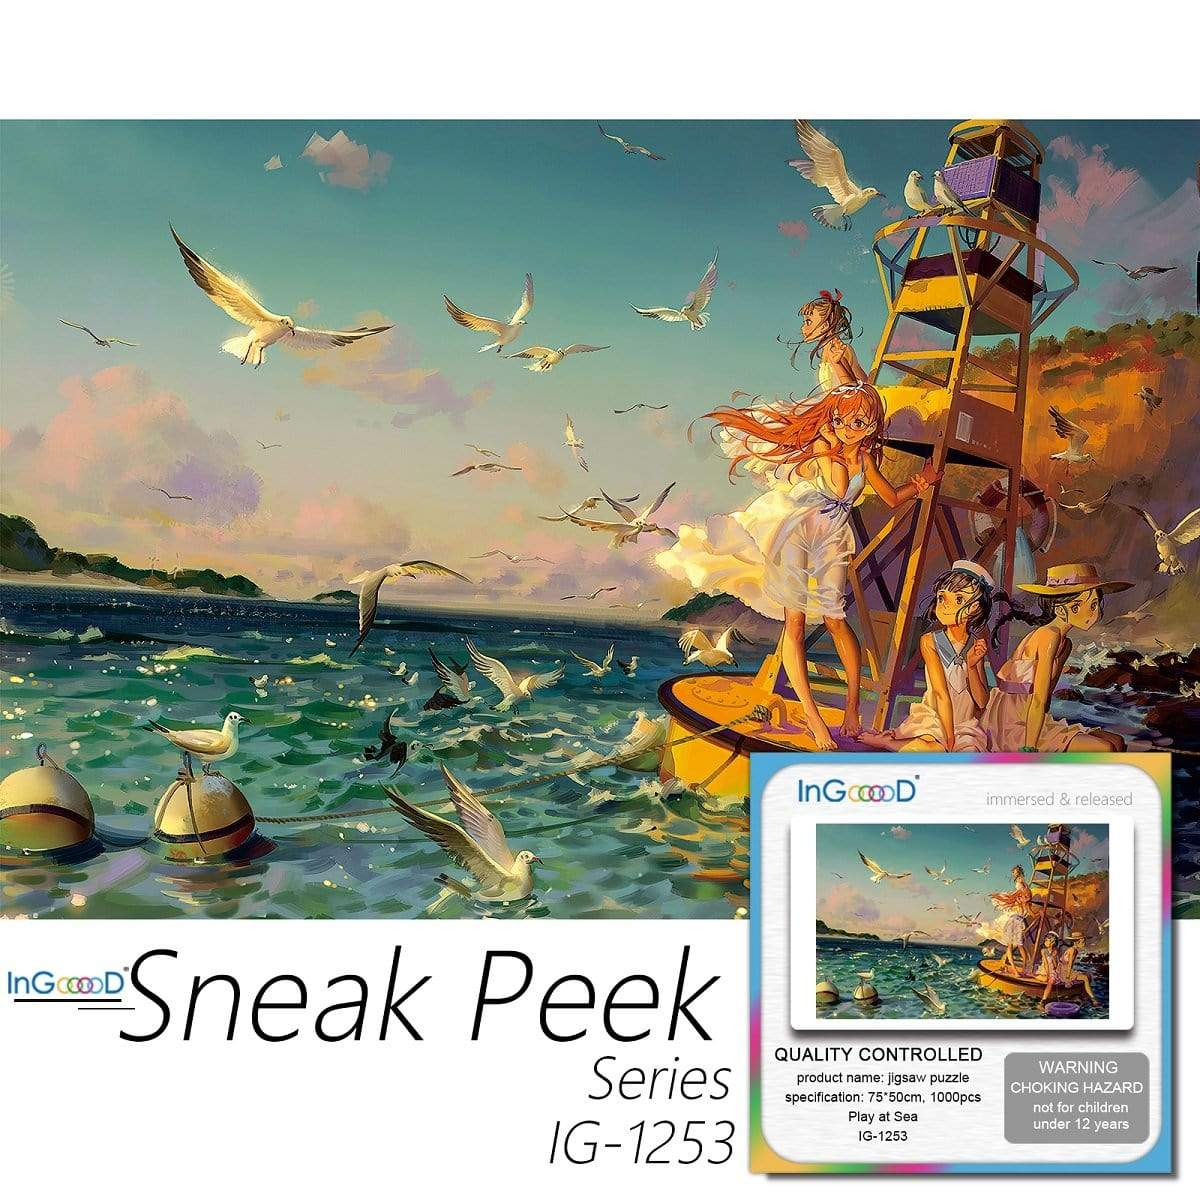 Ingooood-Jigsaw Puzzle 1000 Pieces-Sneak Peek Series-Play at Sea_IG-1253 Entertainment Toys for Adult Special Graduation or Birthday Gift Home Decor - Ingooood